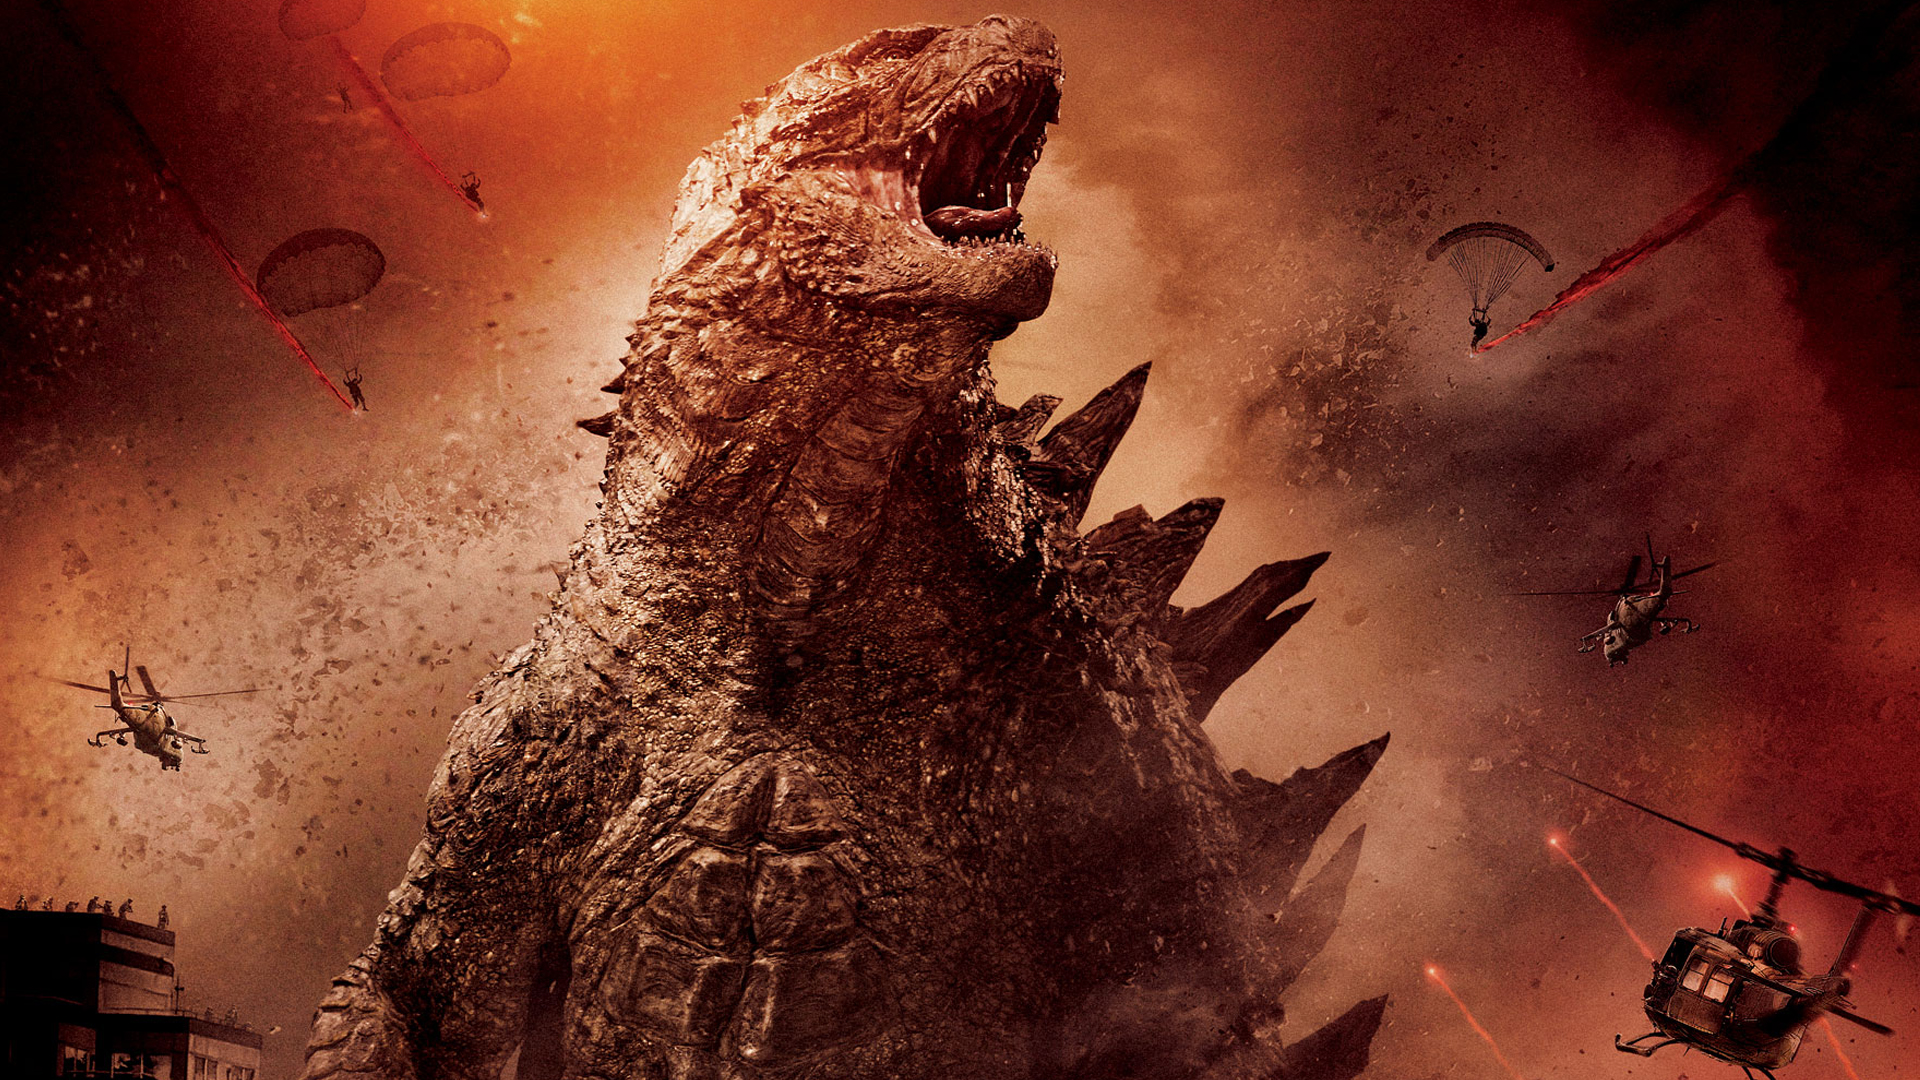 What If Godzilla Was Real?